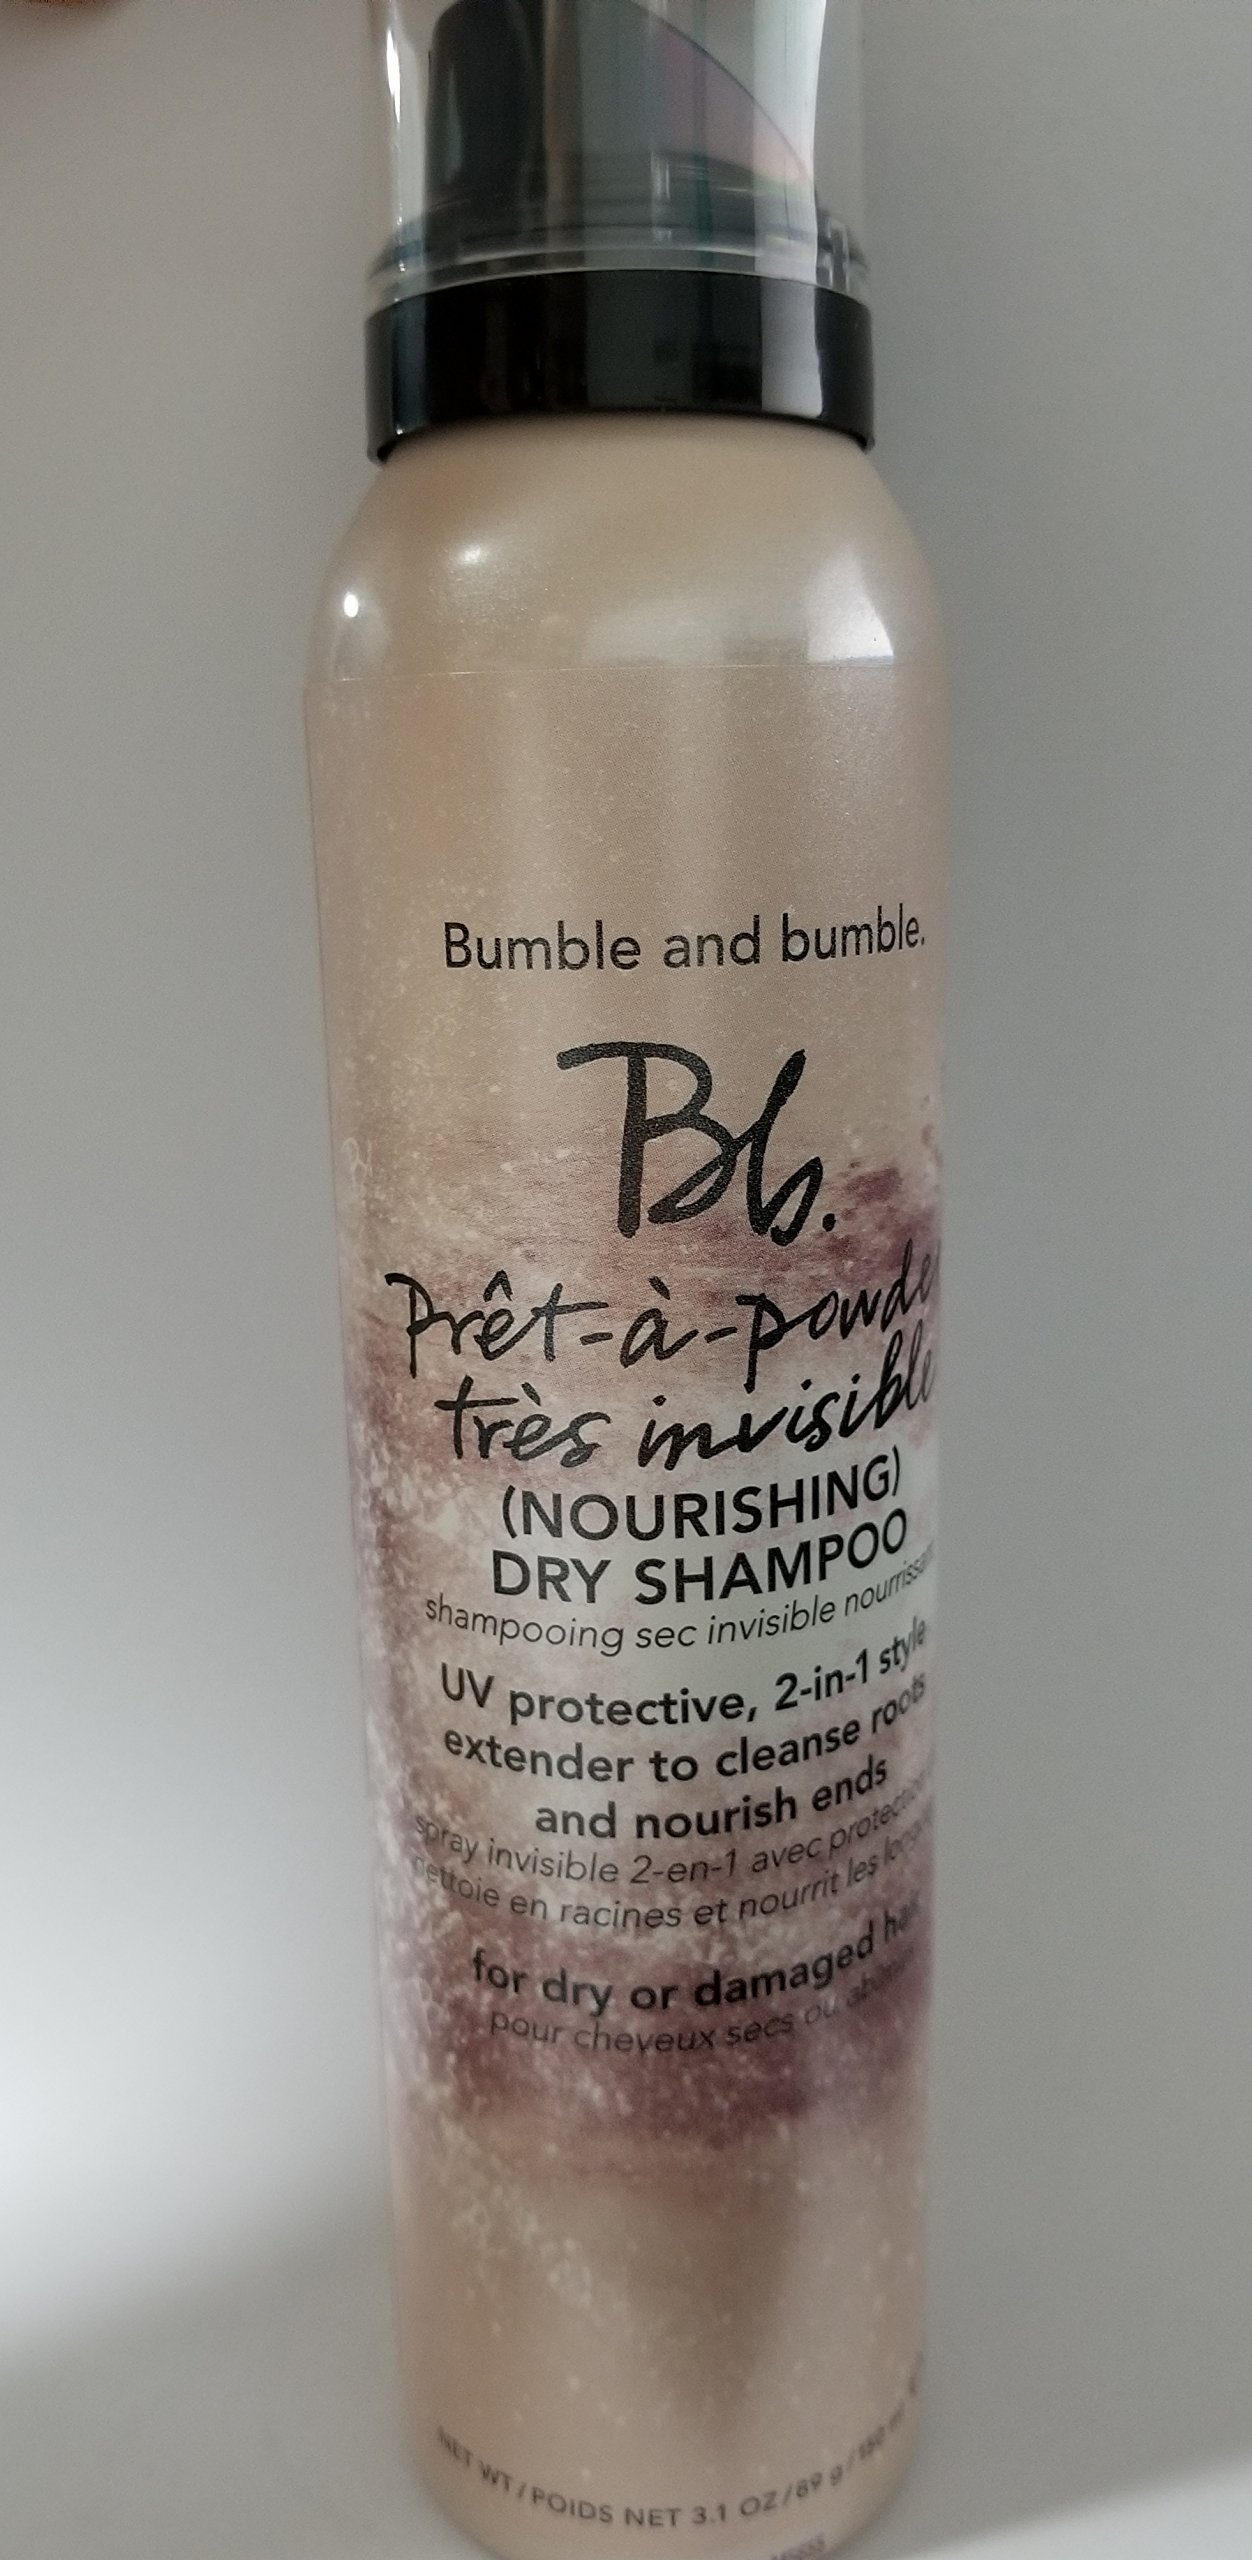 Dry Shampoos by Bumble & bumble Pret-a-powder Tres Invisible Nourishing Dry Shampoo 150g by Bumble and Bumble (Image #1)